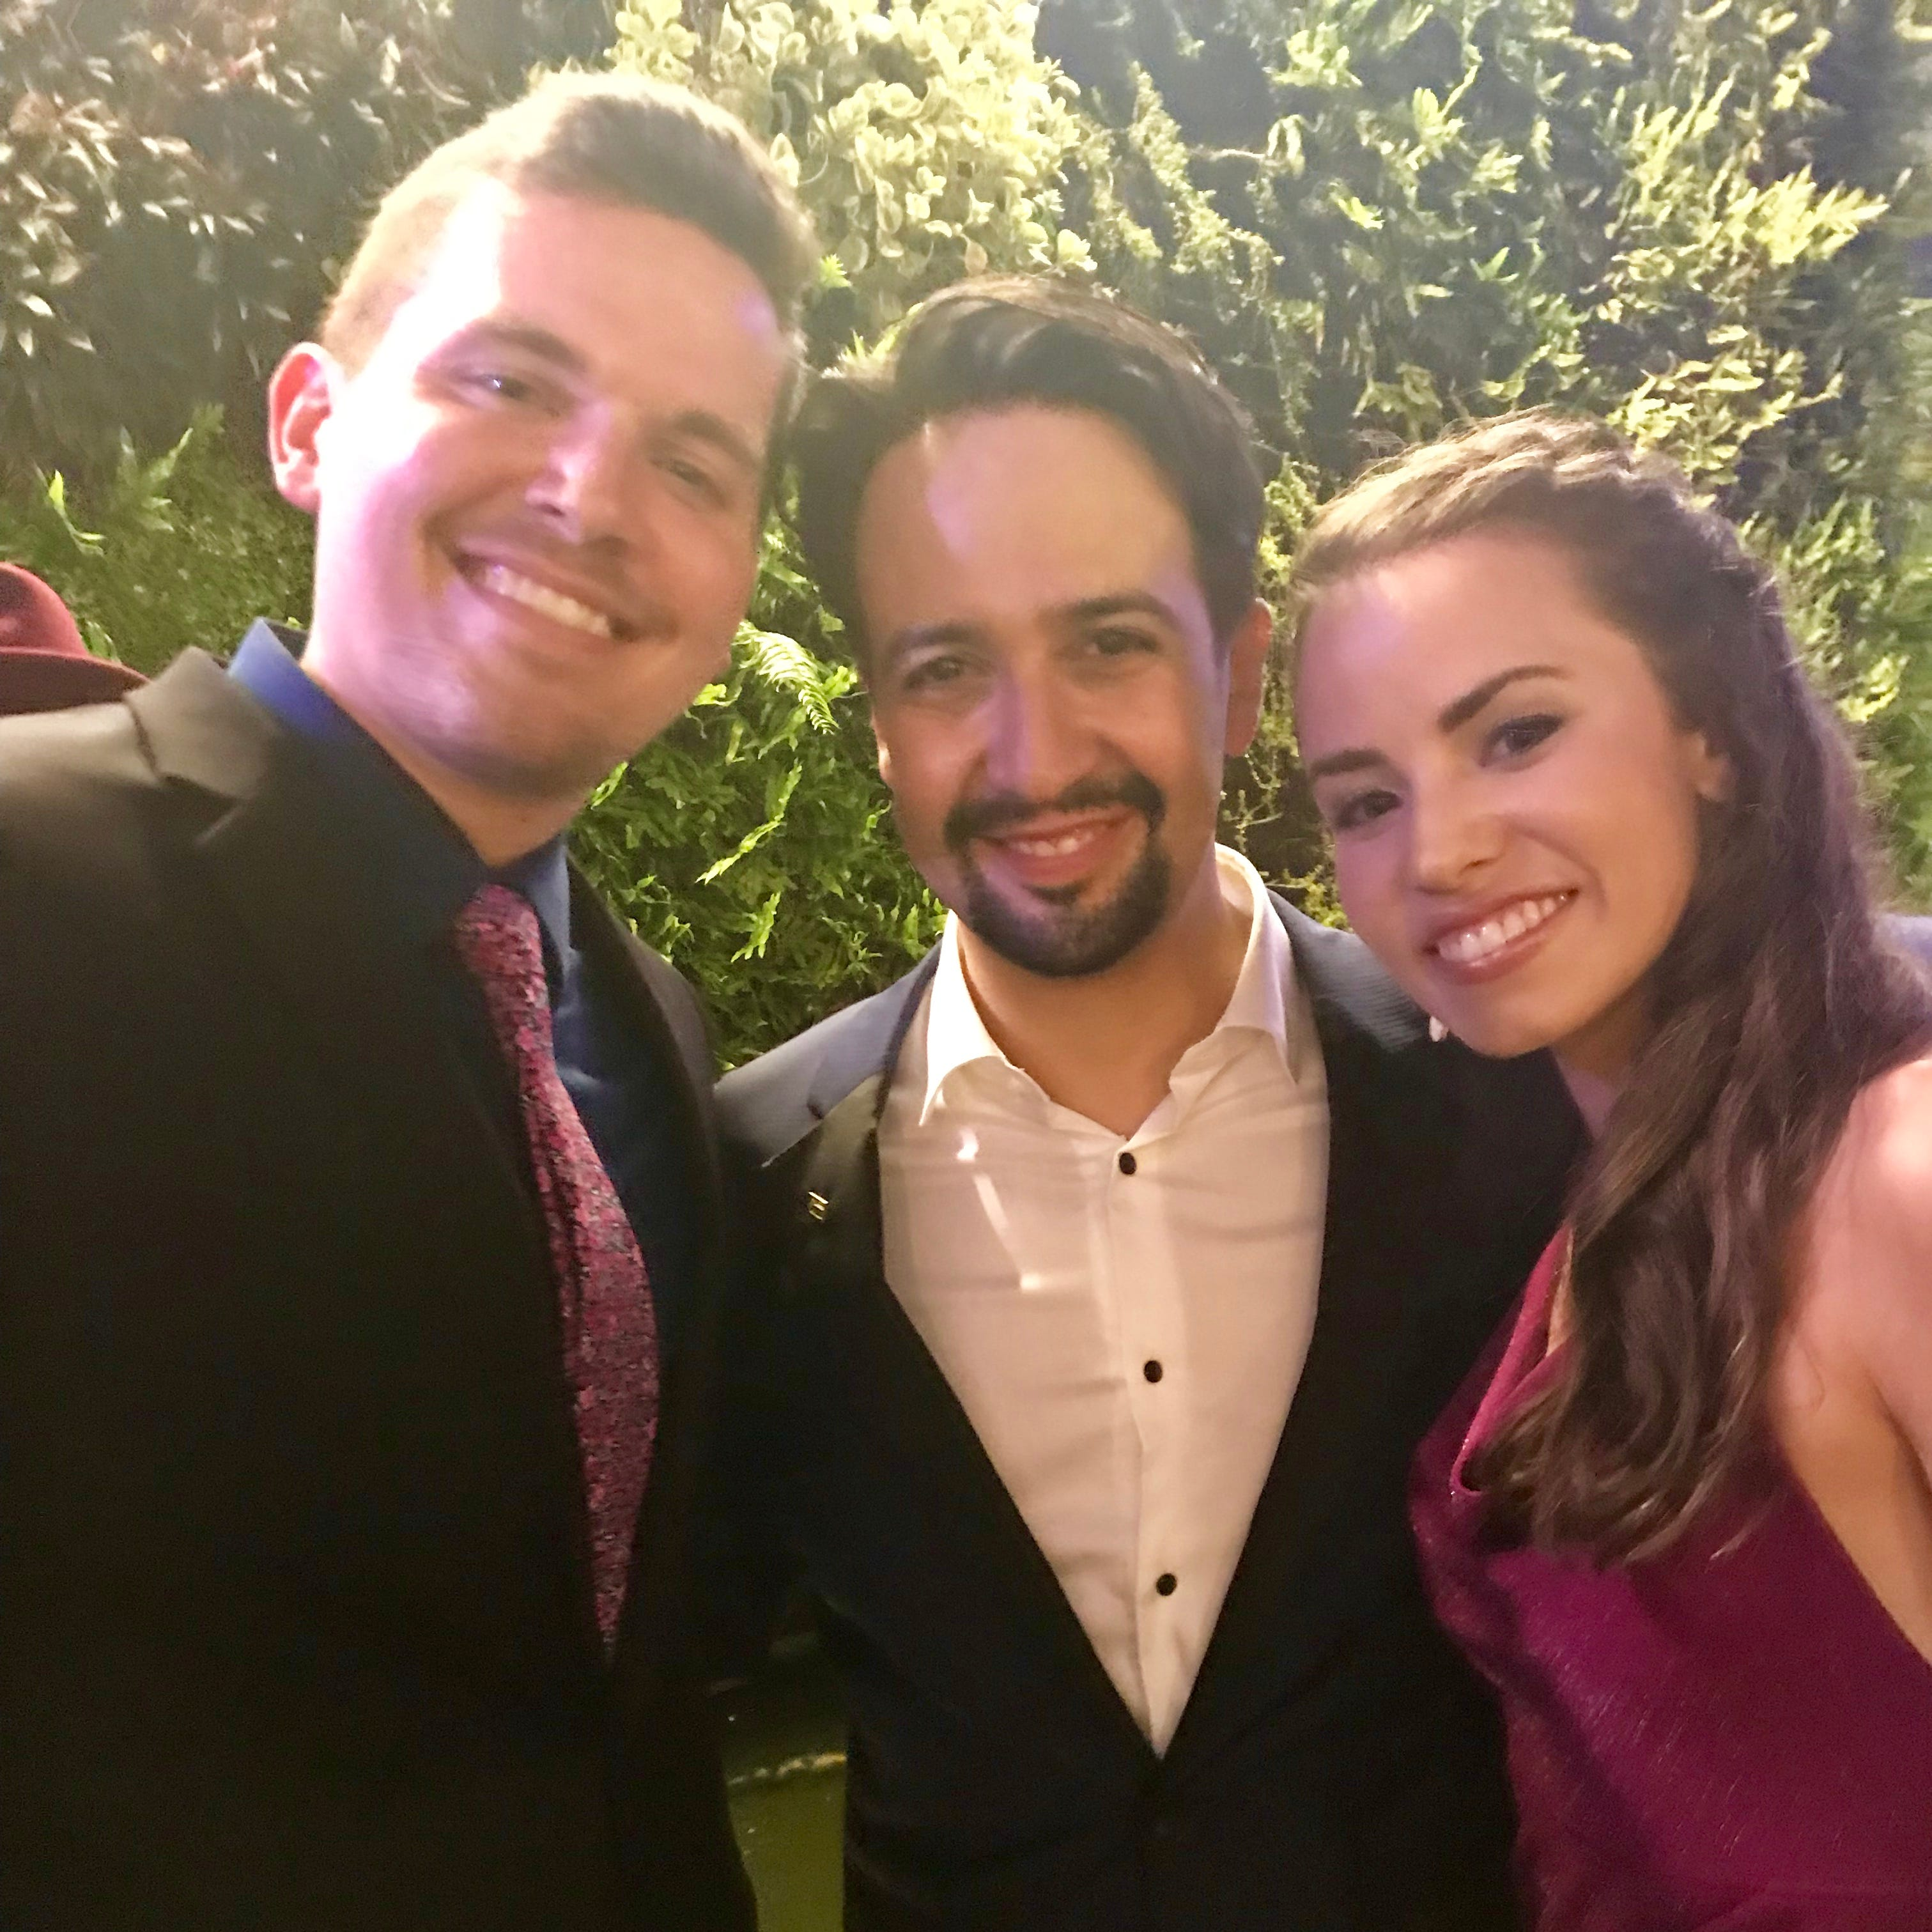 Southern Utah couple cast in touring production of 'Hamilton'